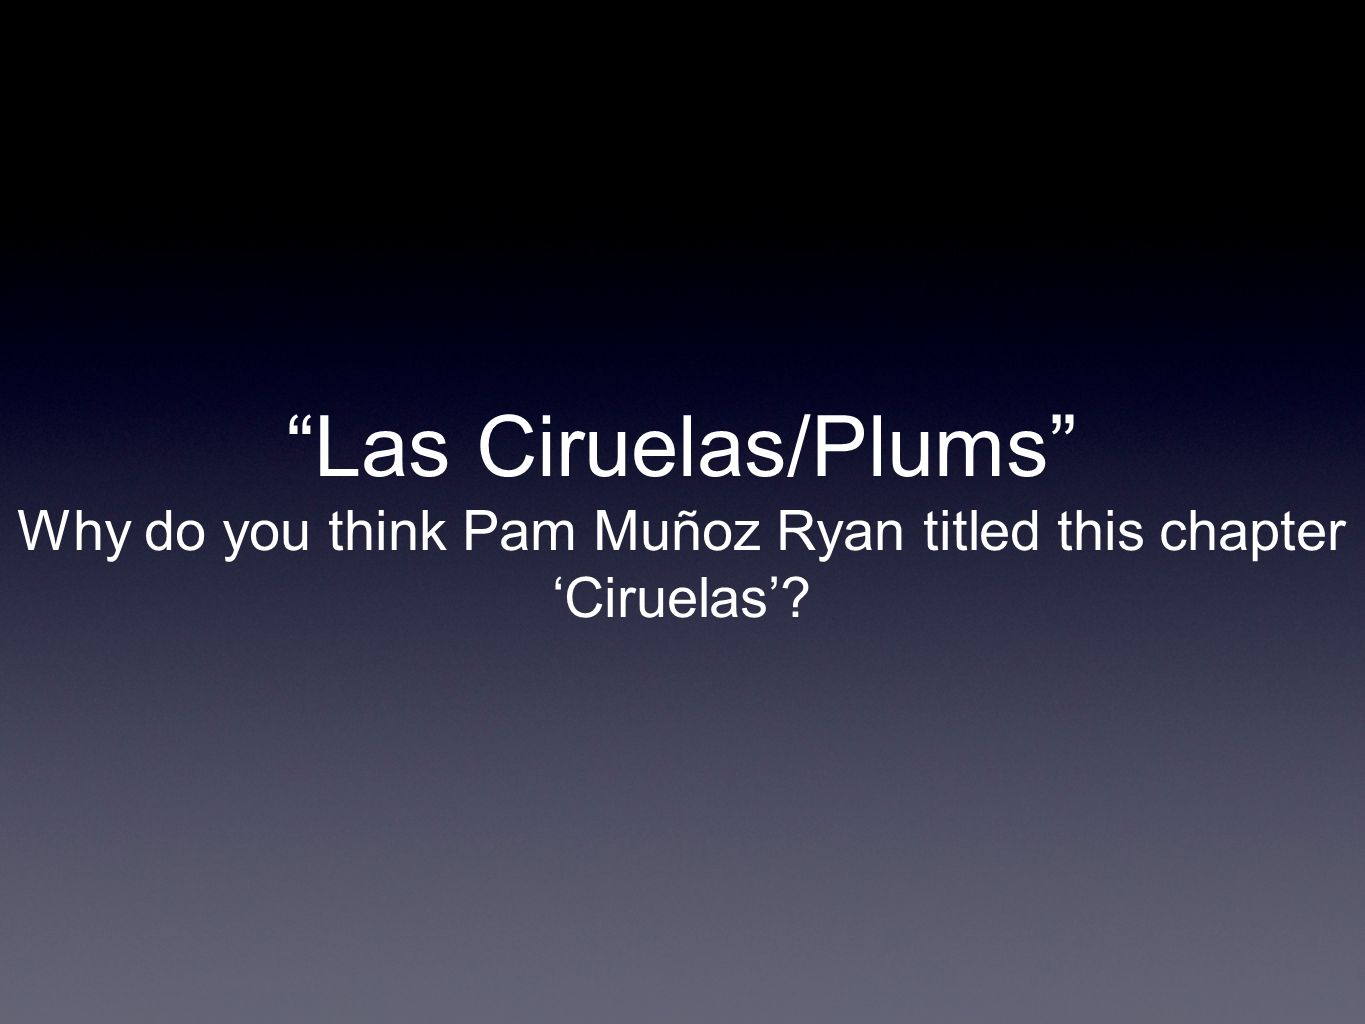 Why do you think Pam Muñoz Ryan titled this chapter 'Ciruelas'